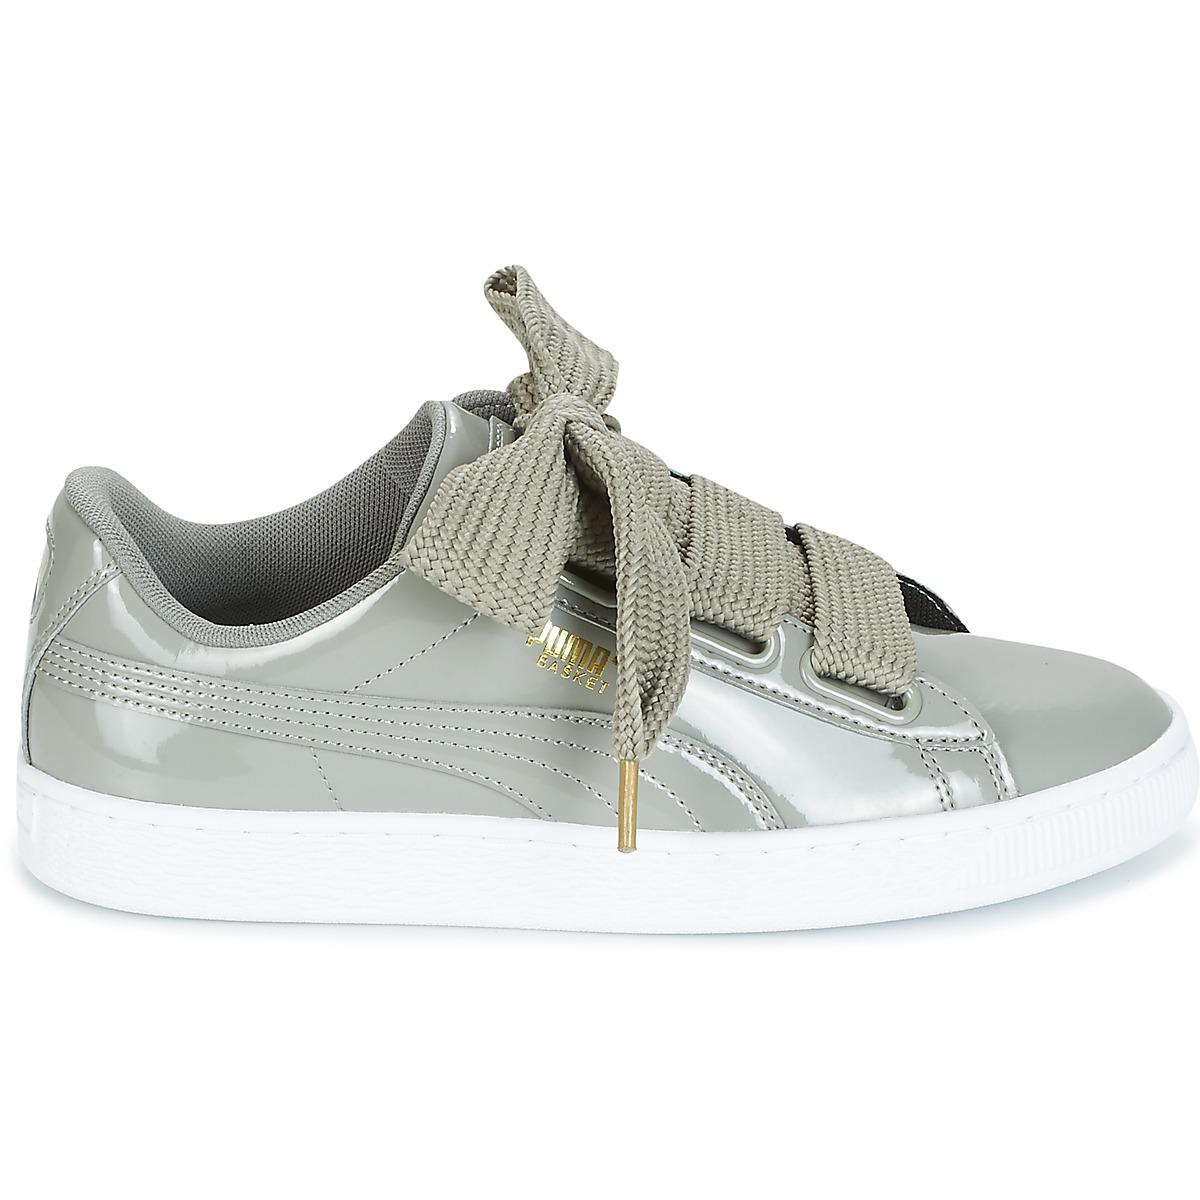 sports shoes 94c92 9c7f3 ... W s Women s Shoes (trainers) In Grey - Lyst. View fullscreen